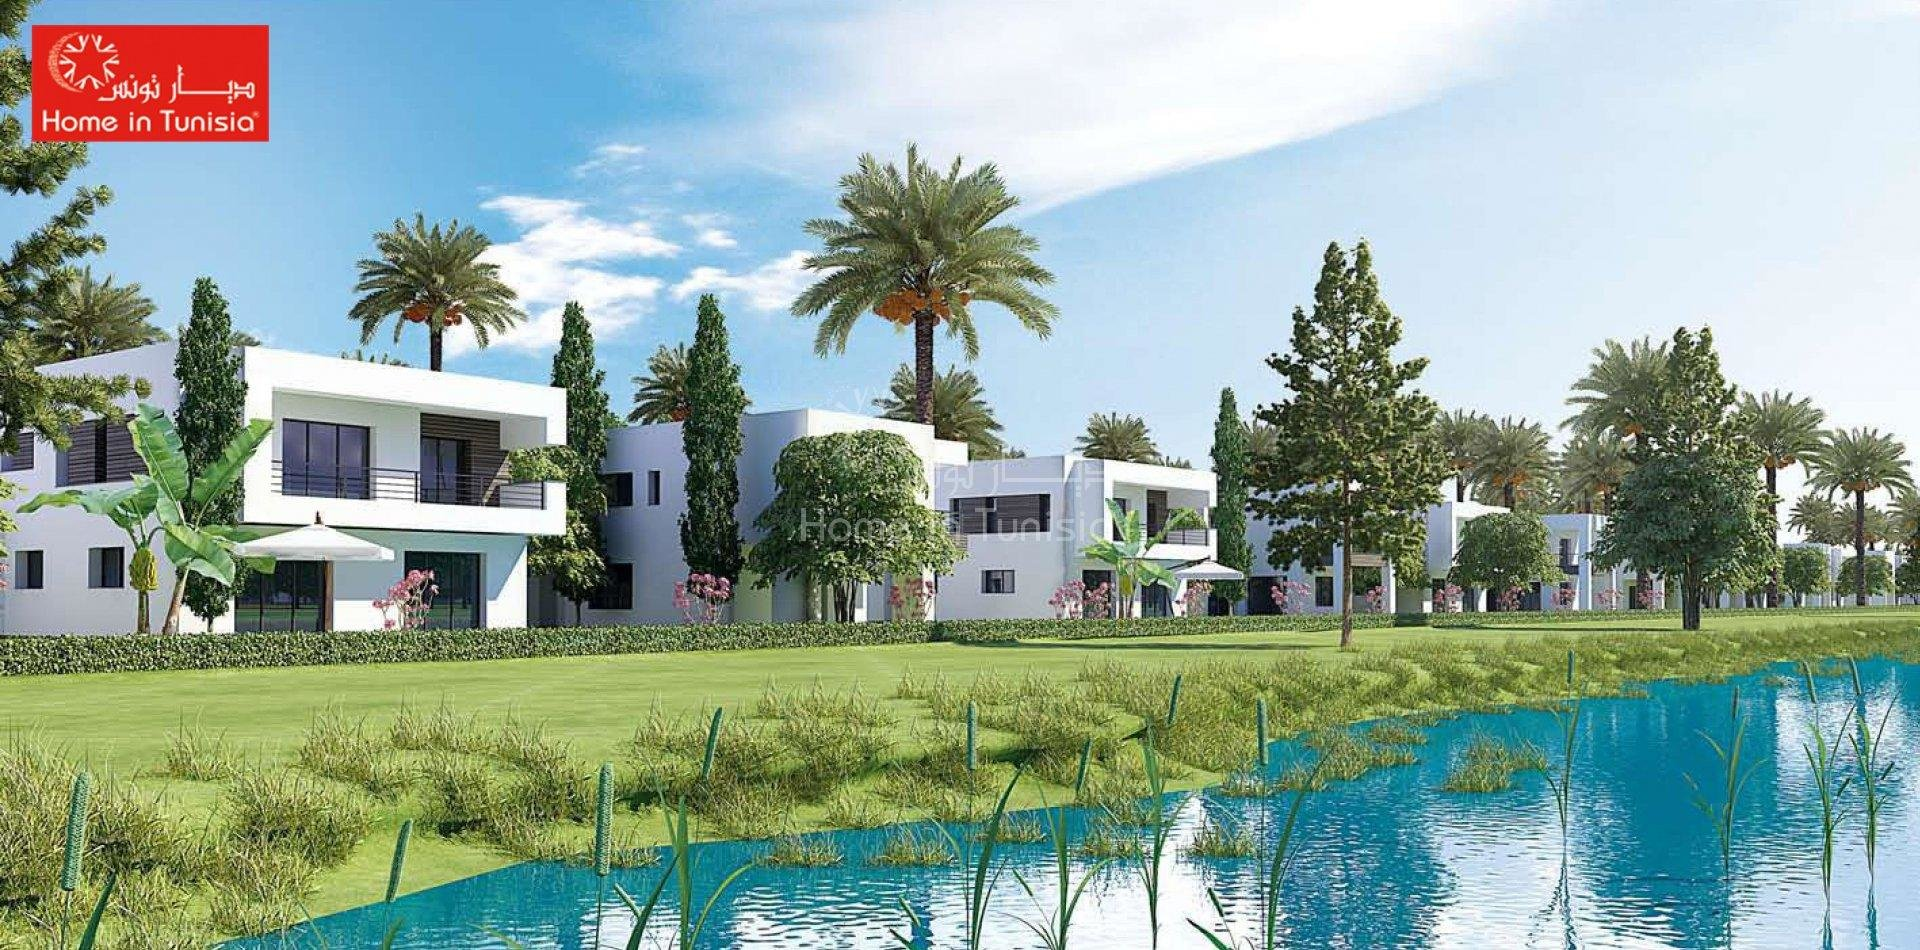 Villa Isolated New Golf Of 345 M2 With 4 Rooms Terrace Garden Swimming Pool  Garage